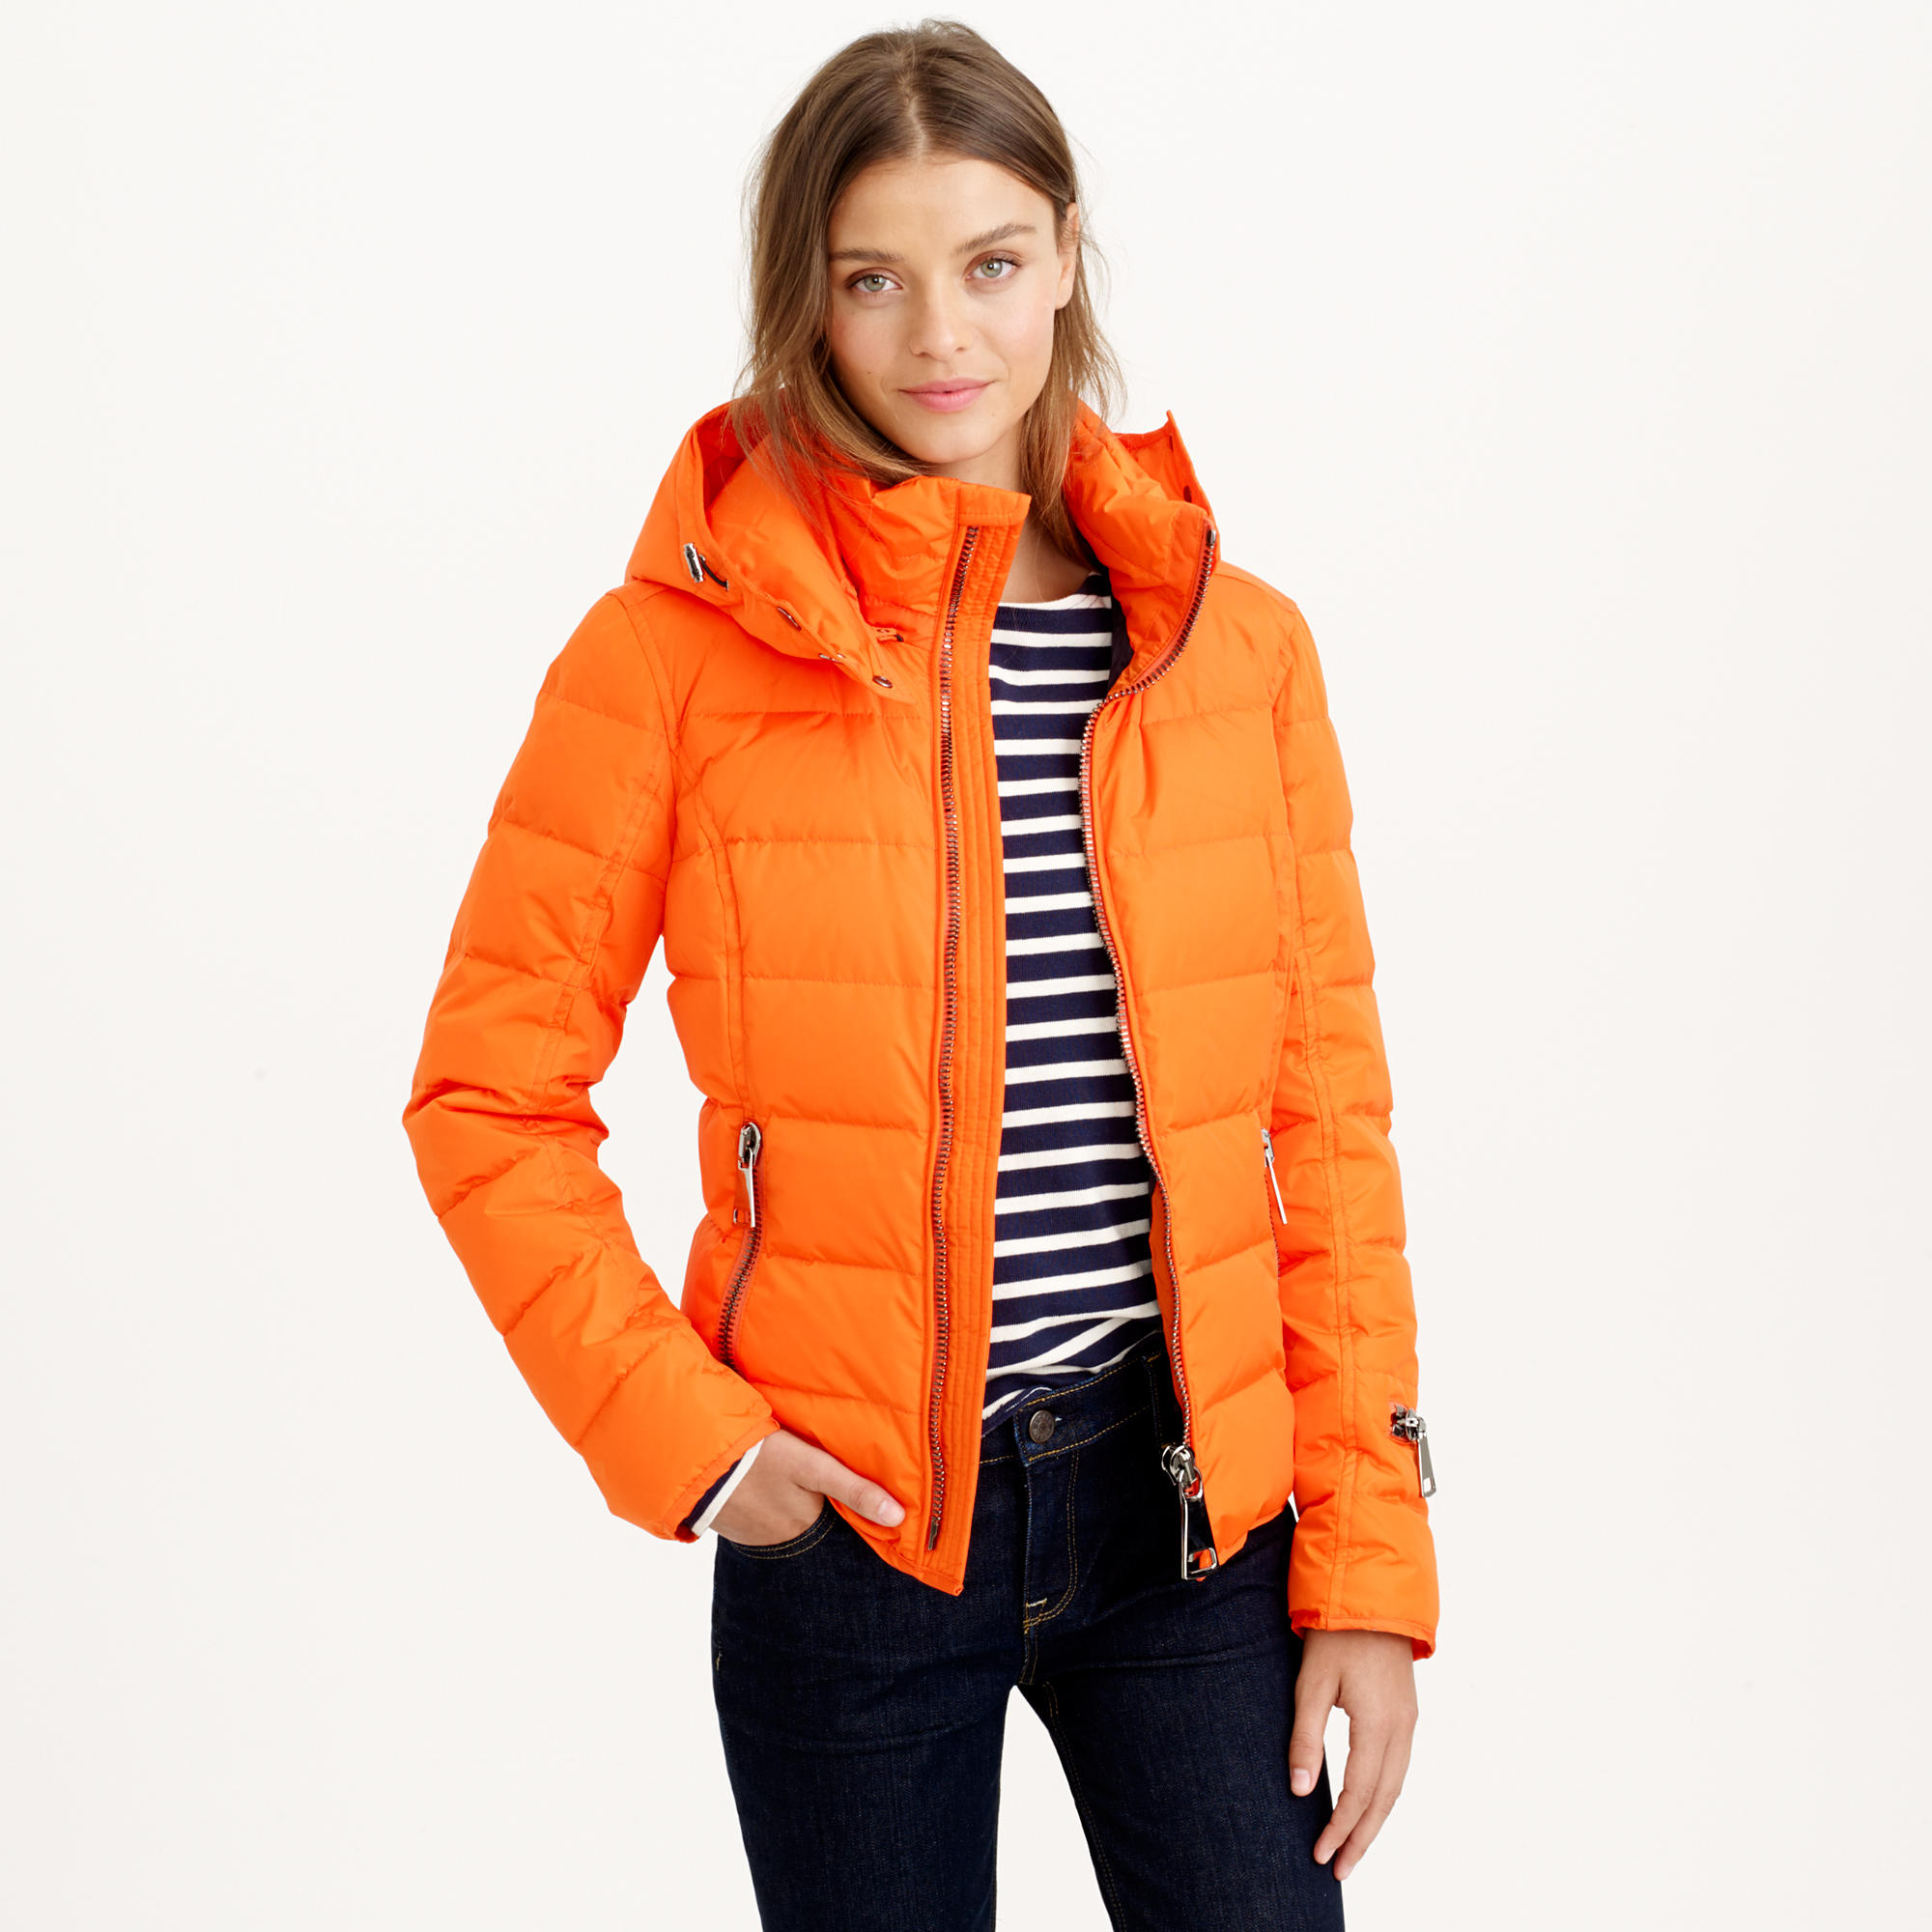 J.Crew Authier New Fit Jacket in Orange - Lyst 9a26f3c52